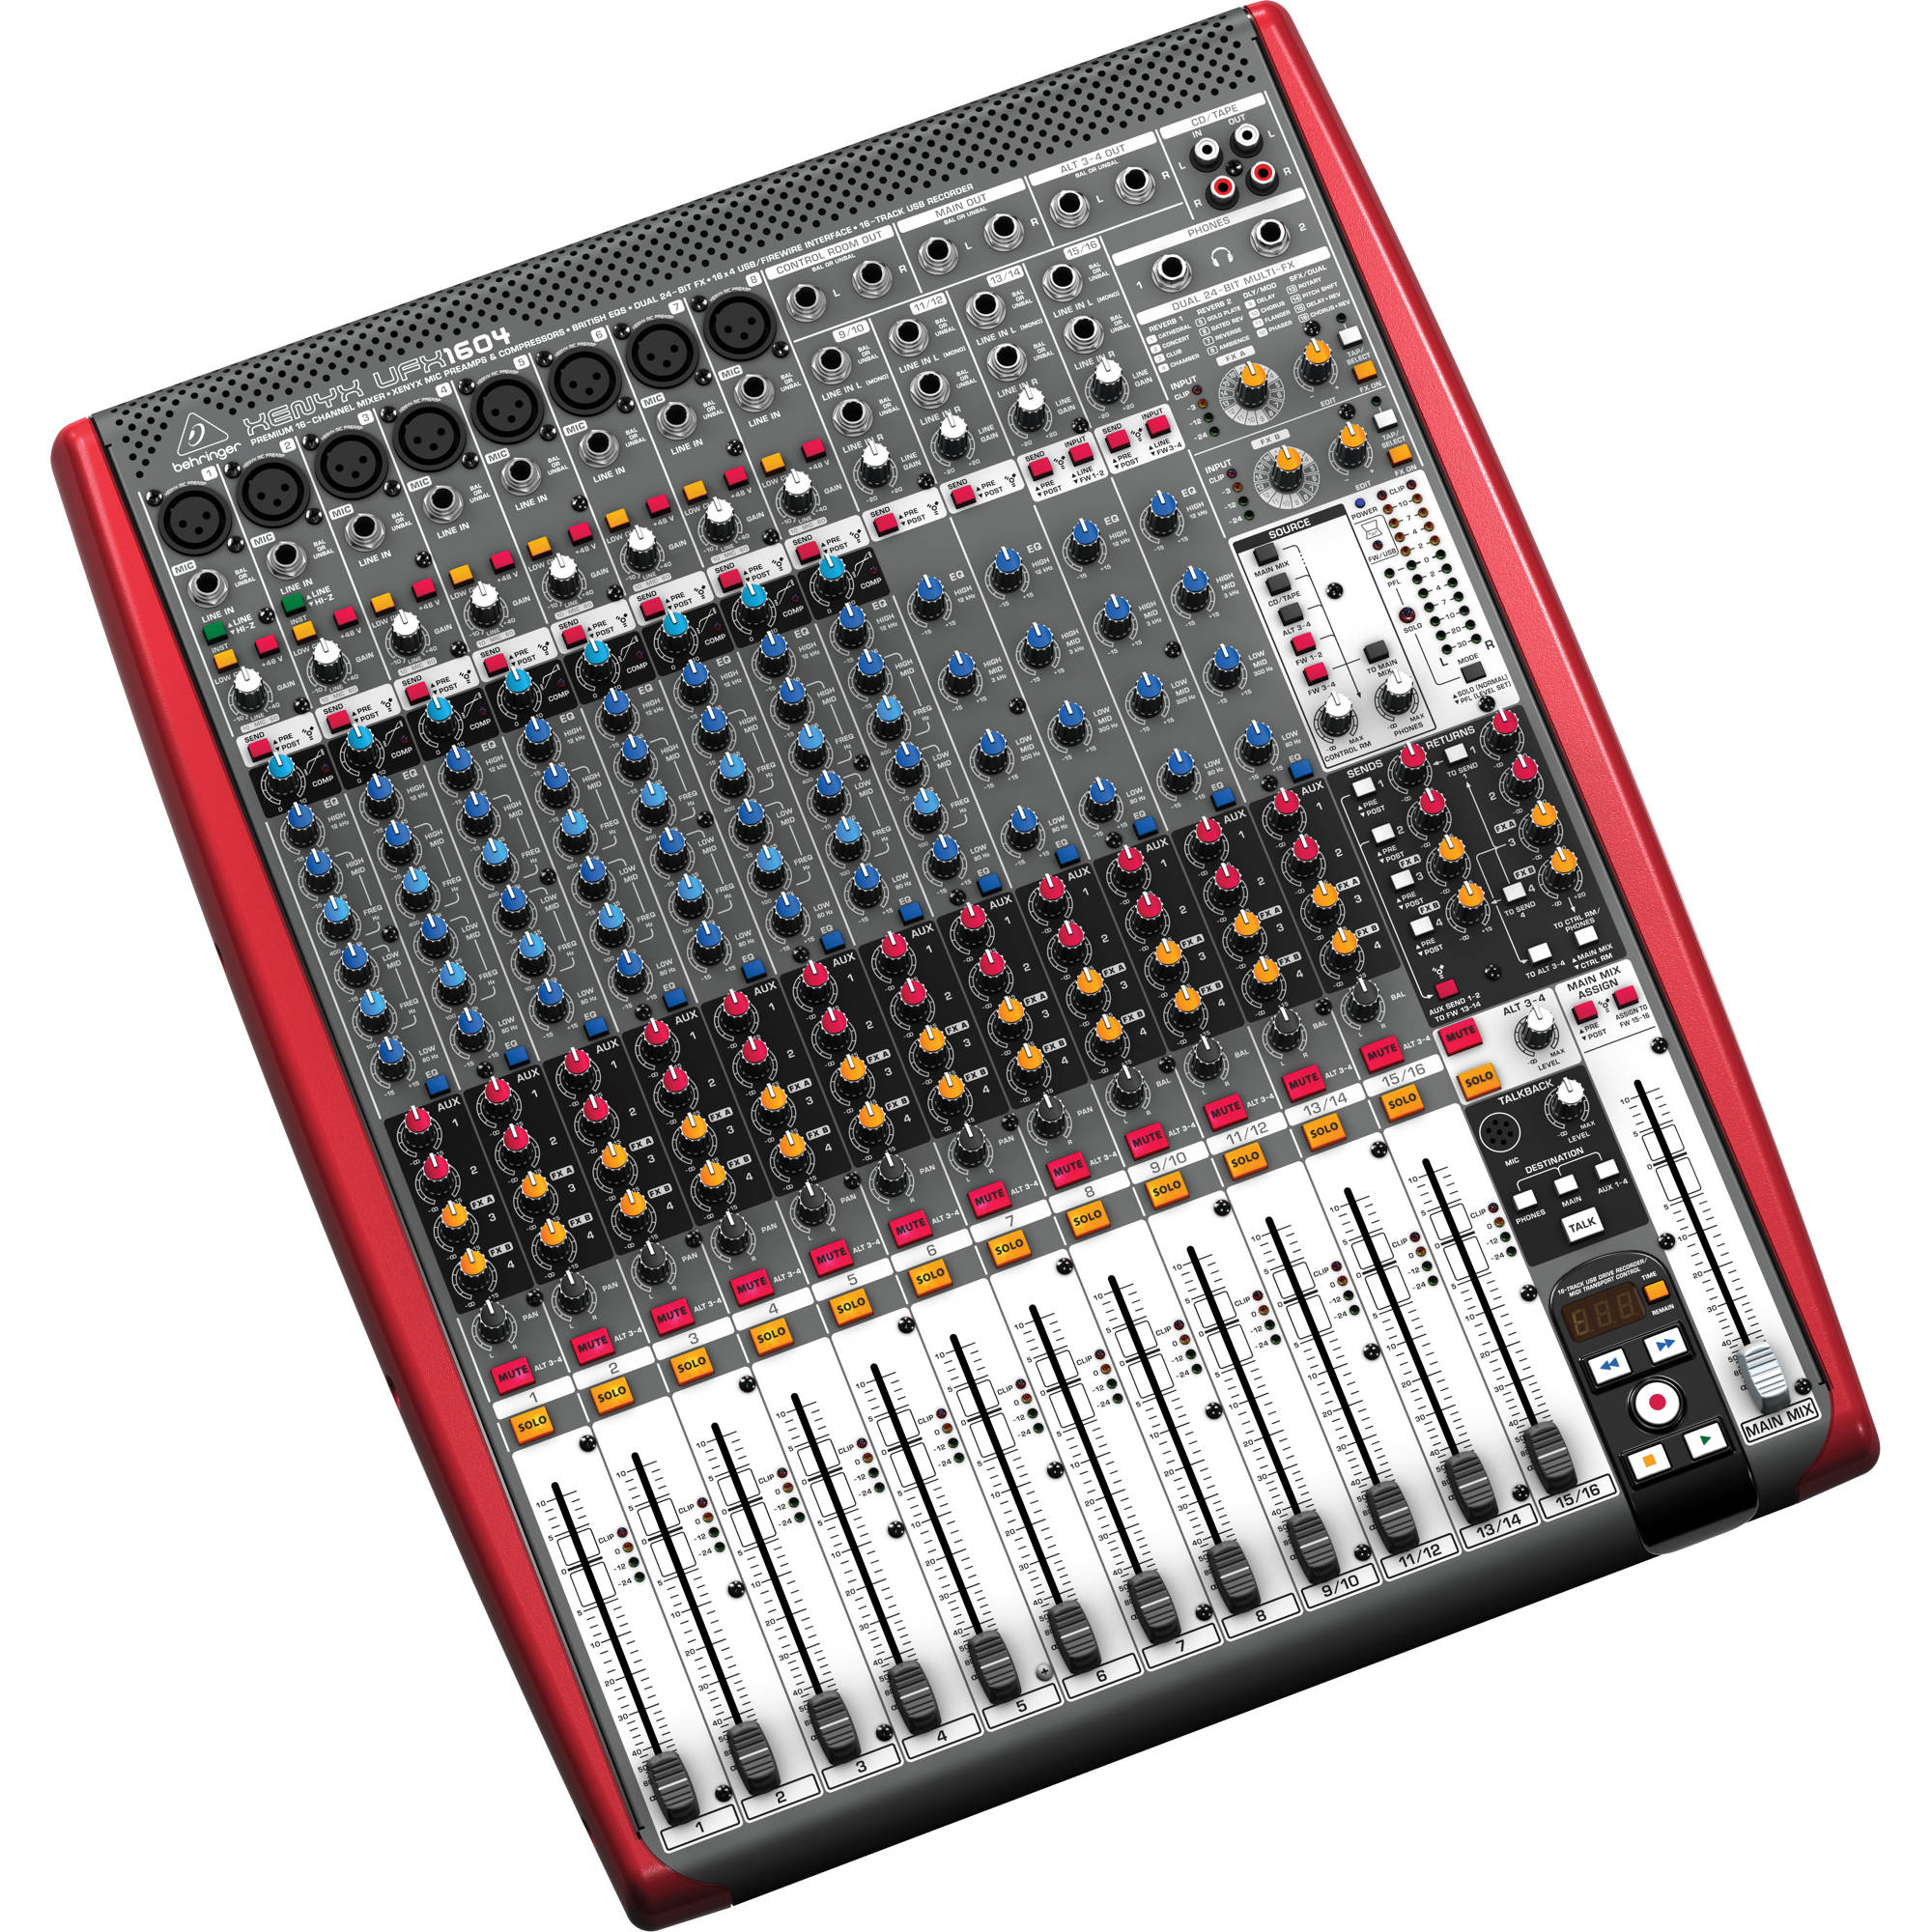 behringer xenyx ufx1604 16 input 4 bus mixer with 16x4 ufx1604. Black Bedroom Furniture Sets. Home Design Ideas